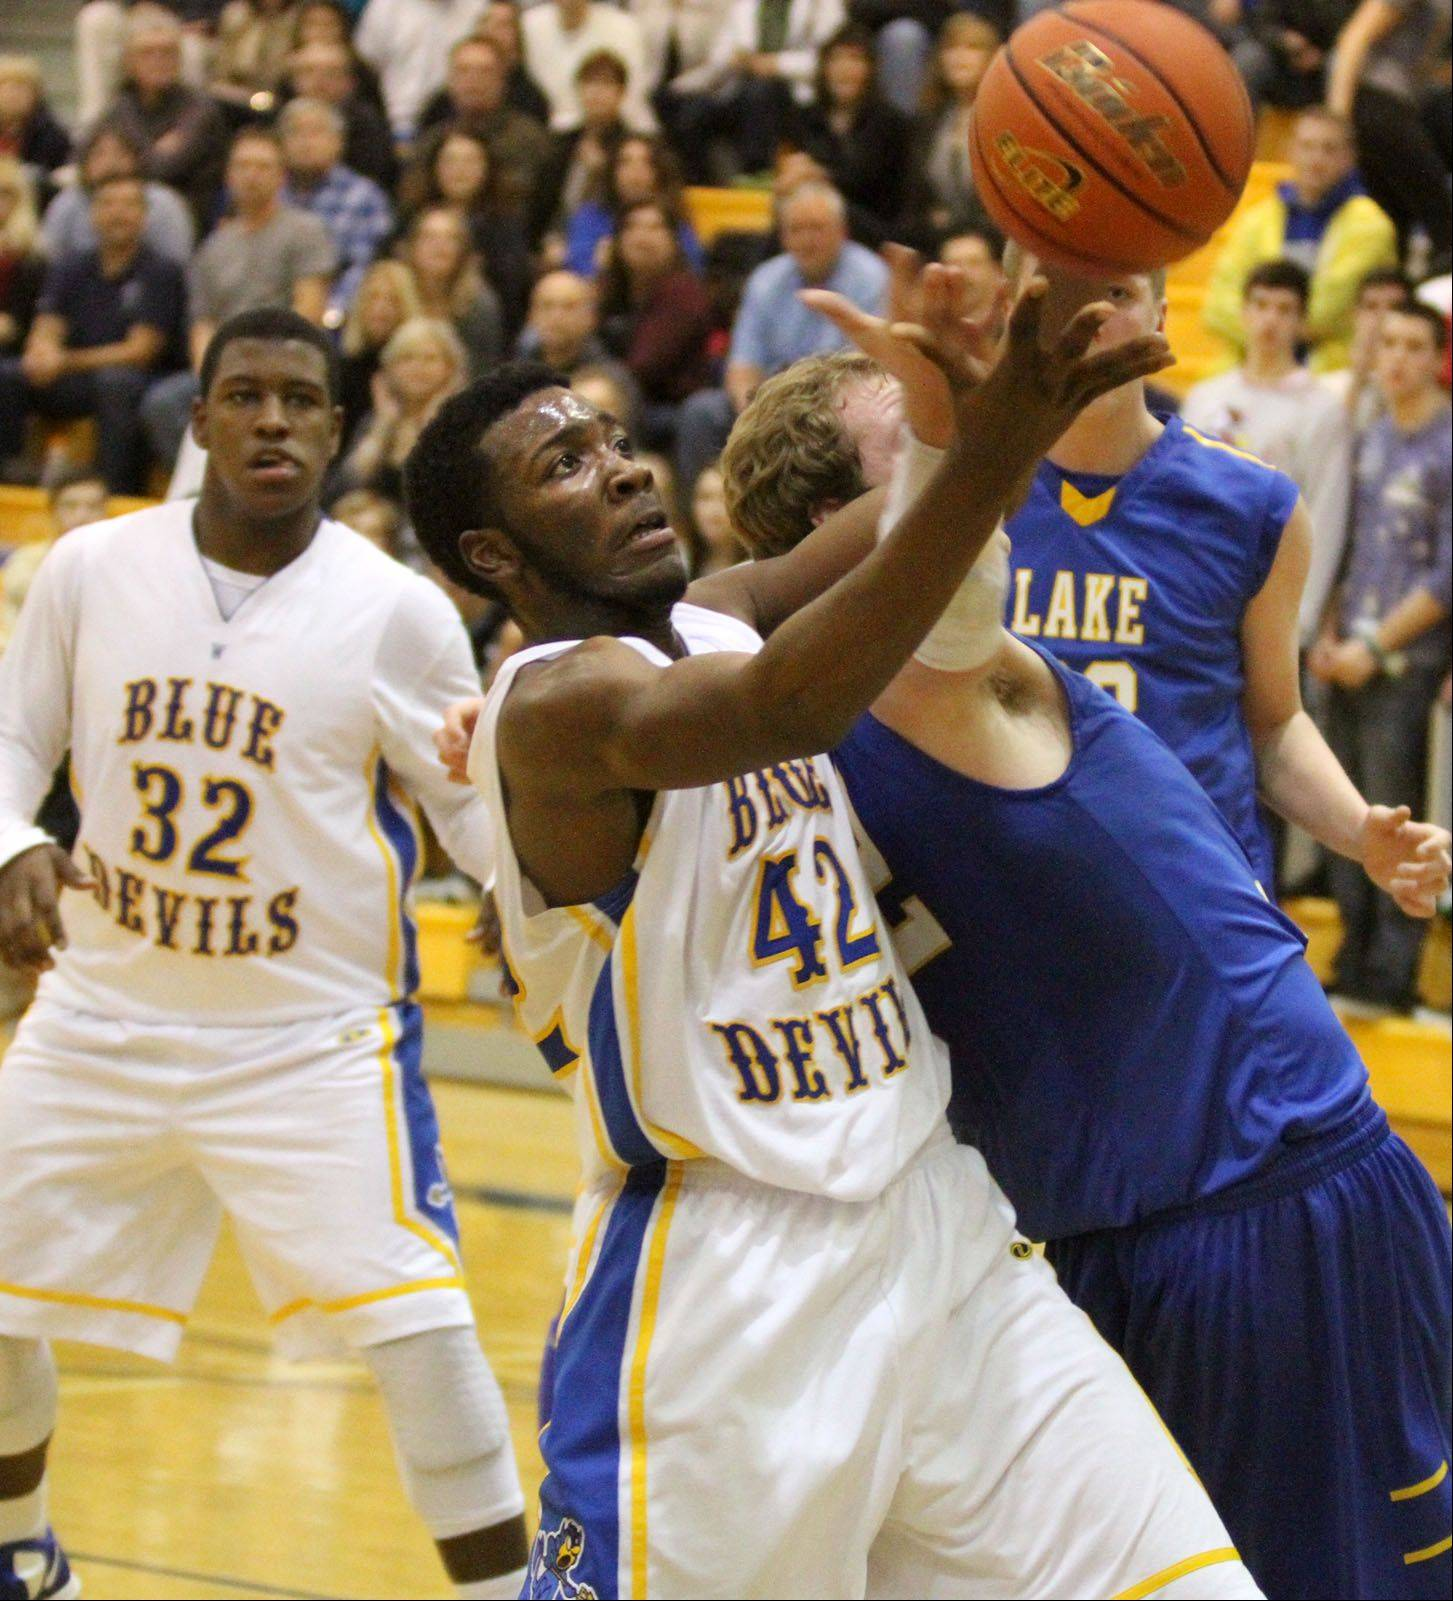 Warren's Dre Von Hill pulls in a rebound against Lake Forest in Gurnee on Friday.